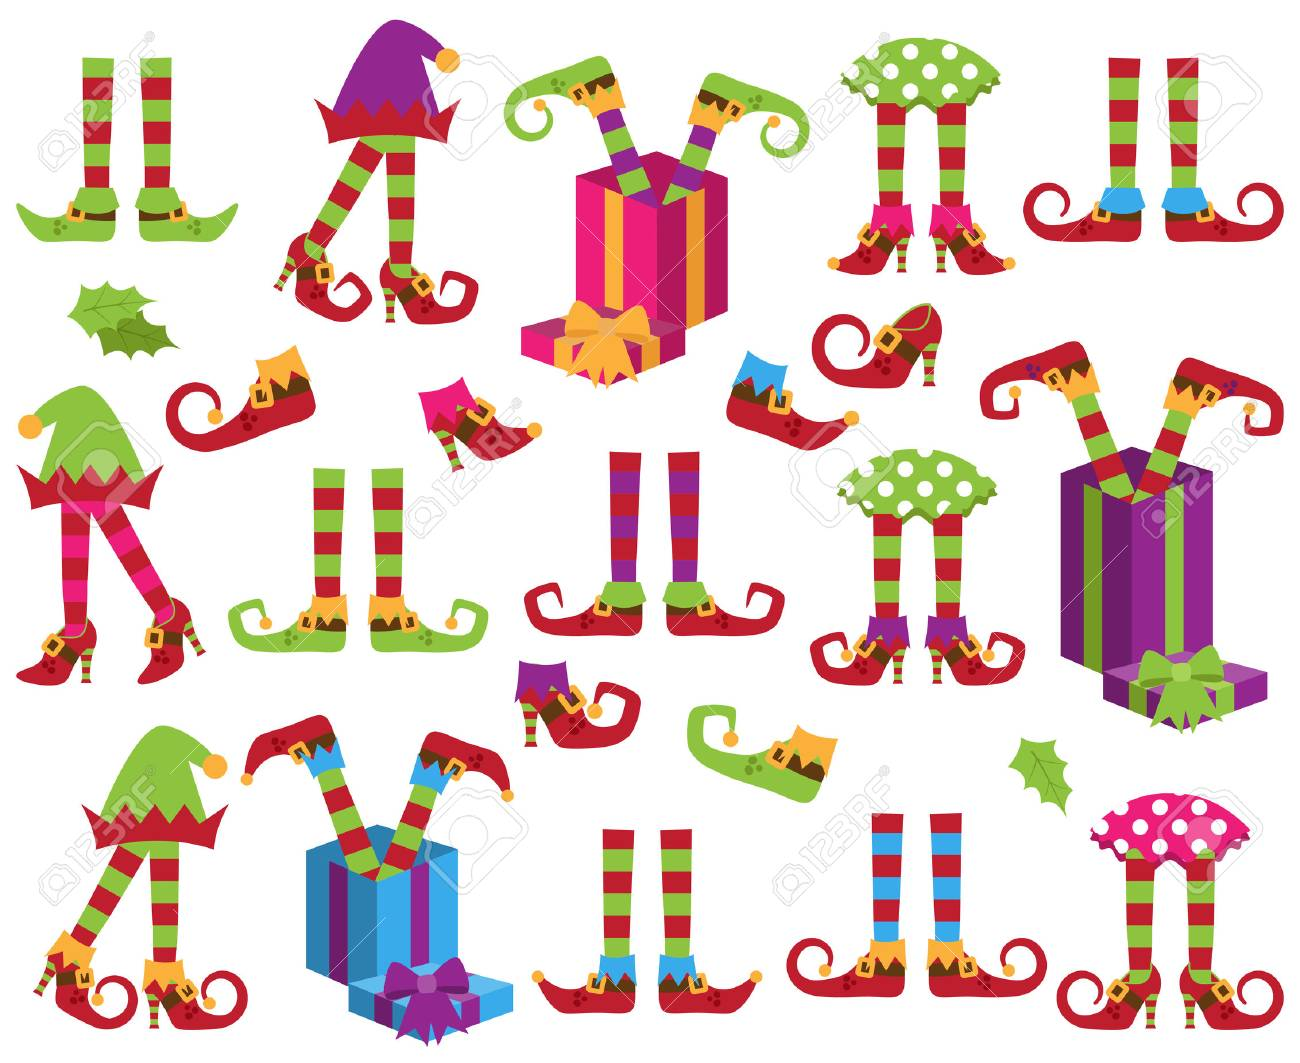 Cute Vector Collection of Christmas Holiday Elf Feet, Legs and Shoes - 86204934